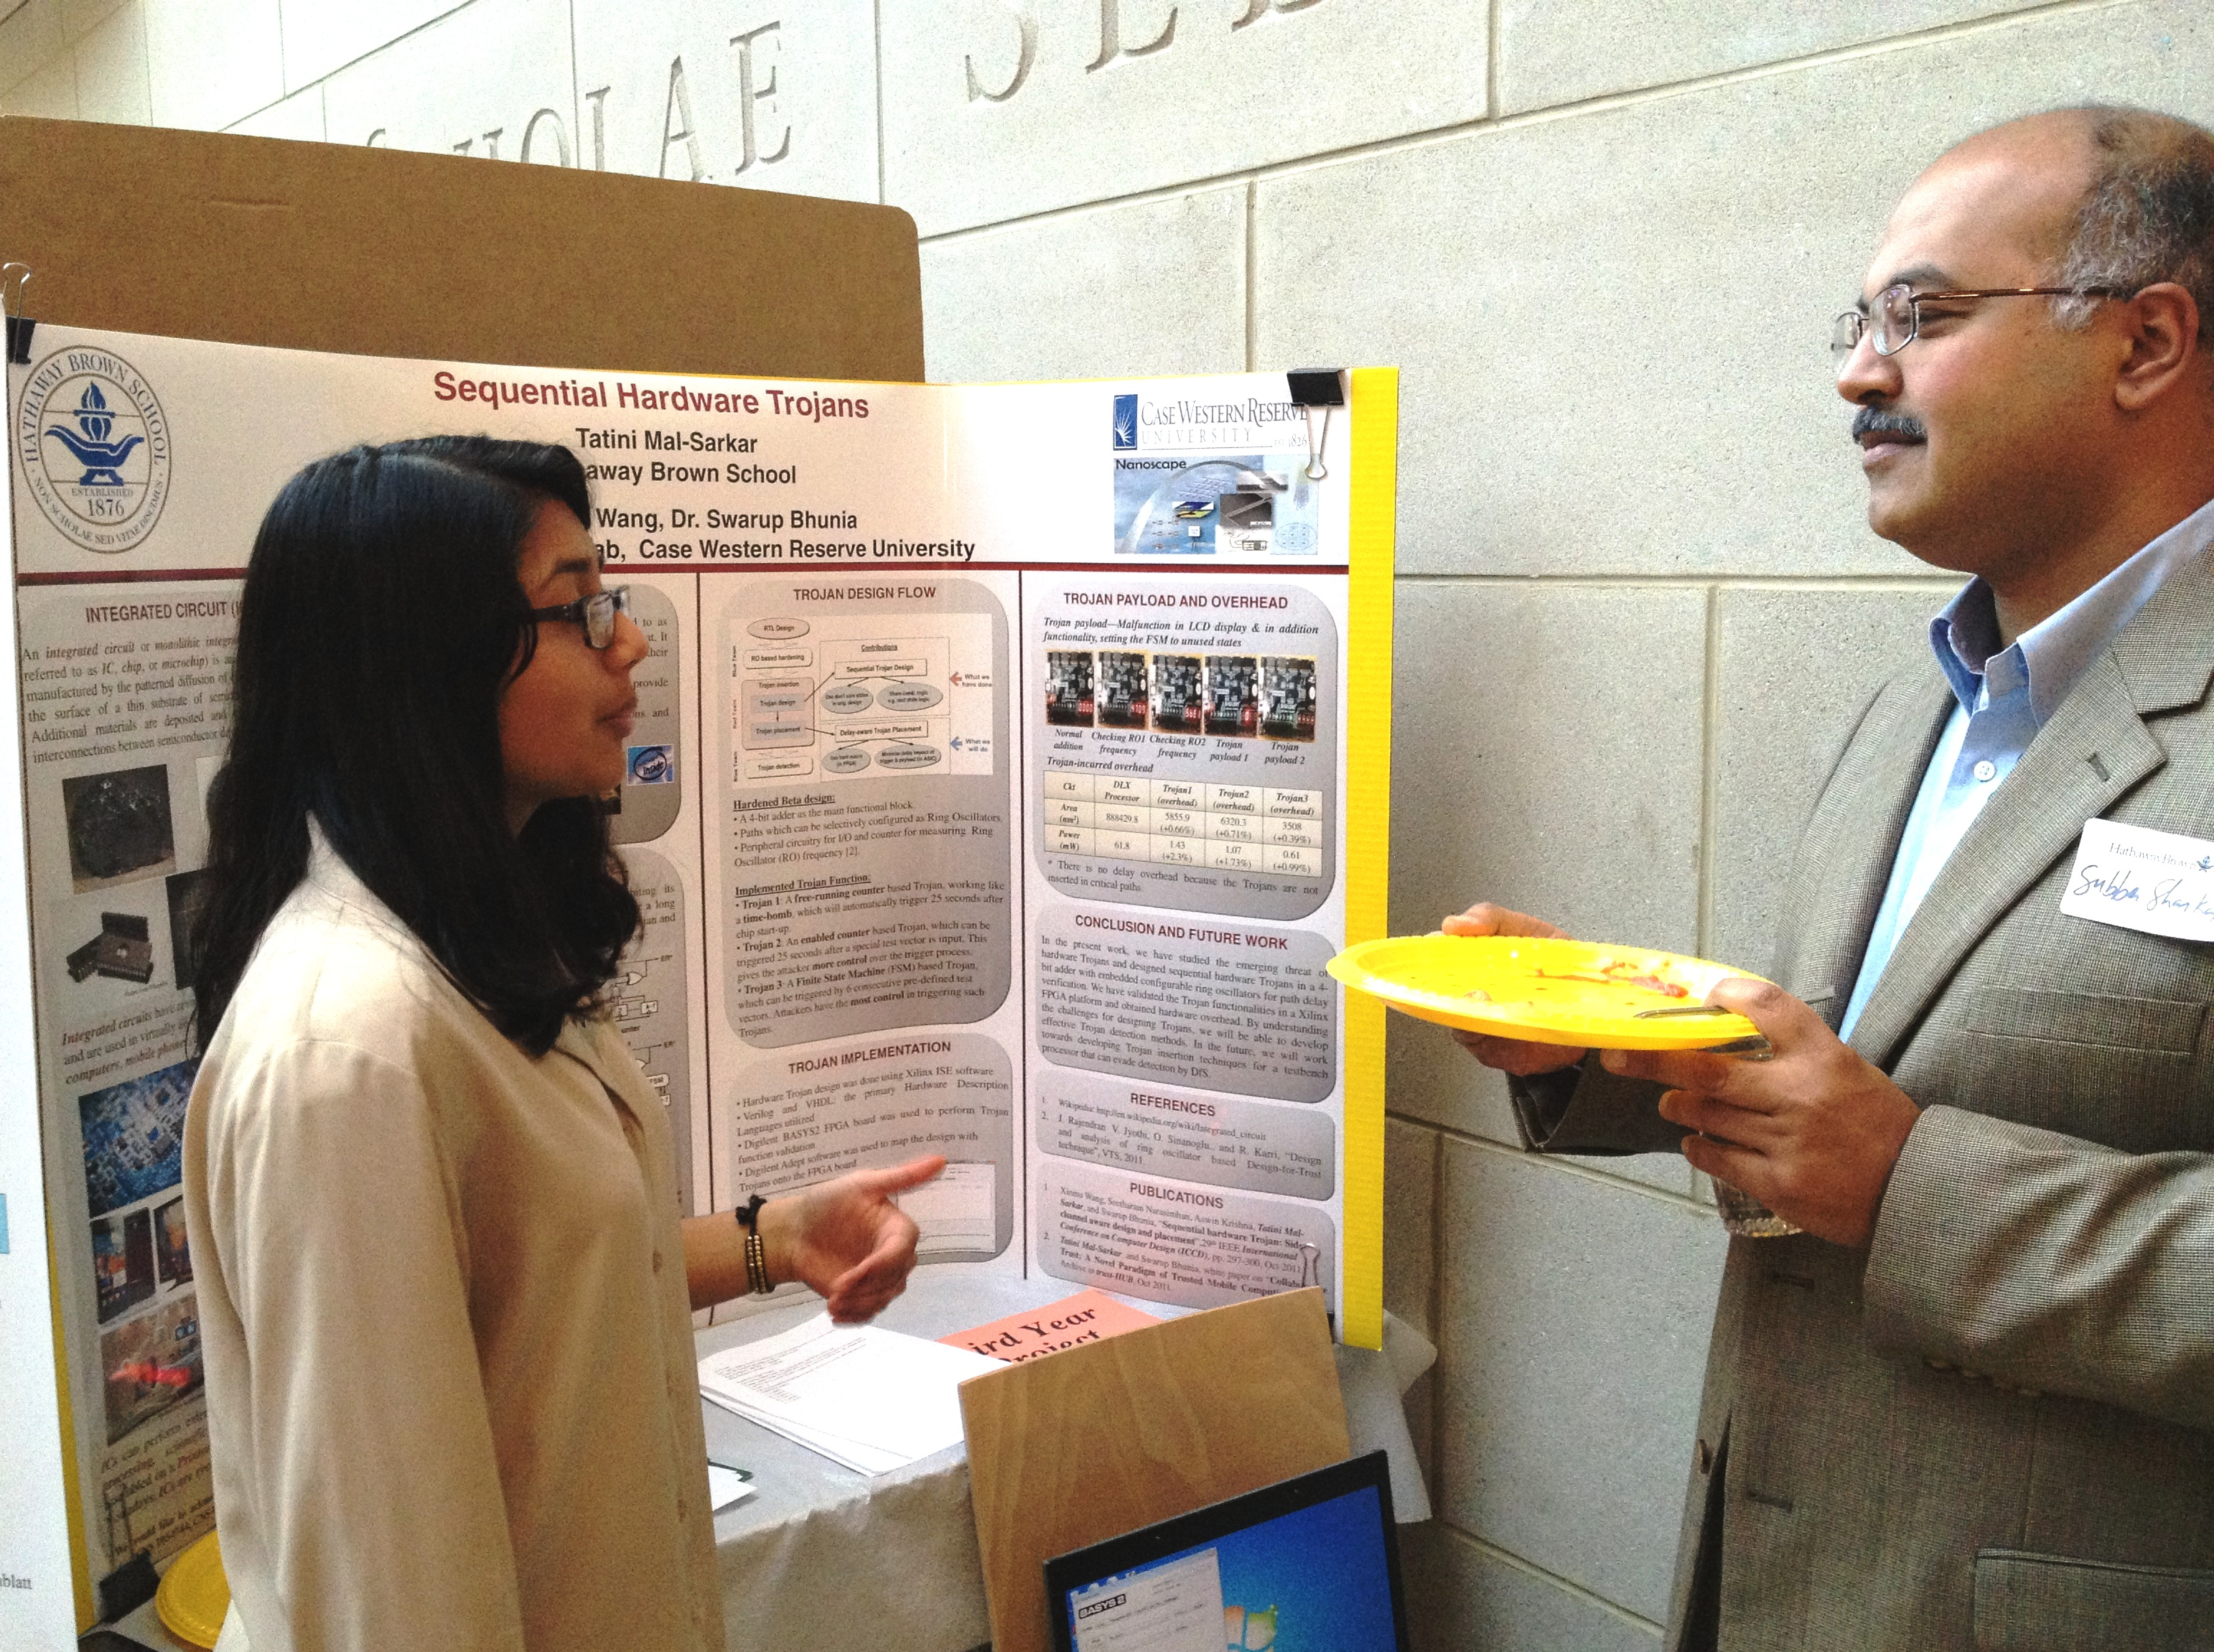 High school student Tatini Mal-Sarkar presenting her award-winning poster in a poster session at Hathaway Brown high school